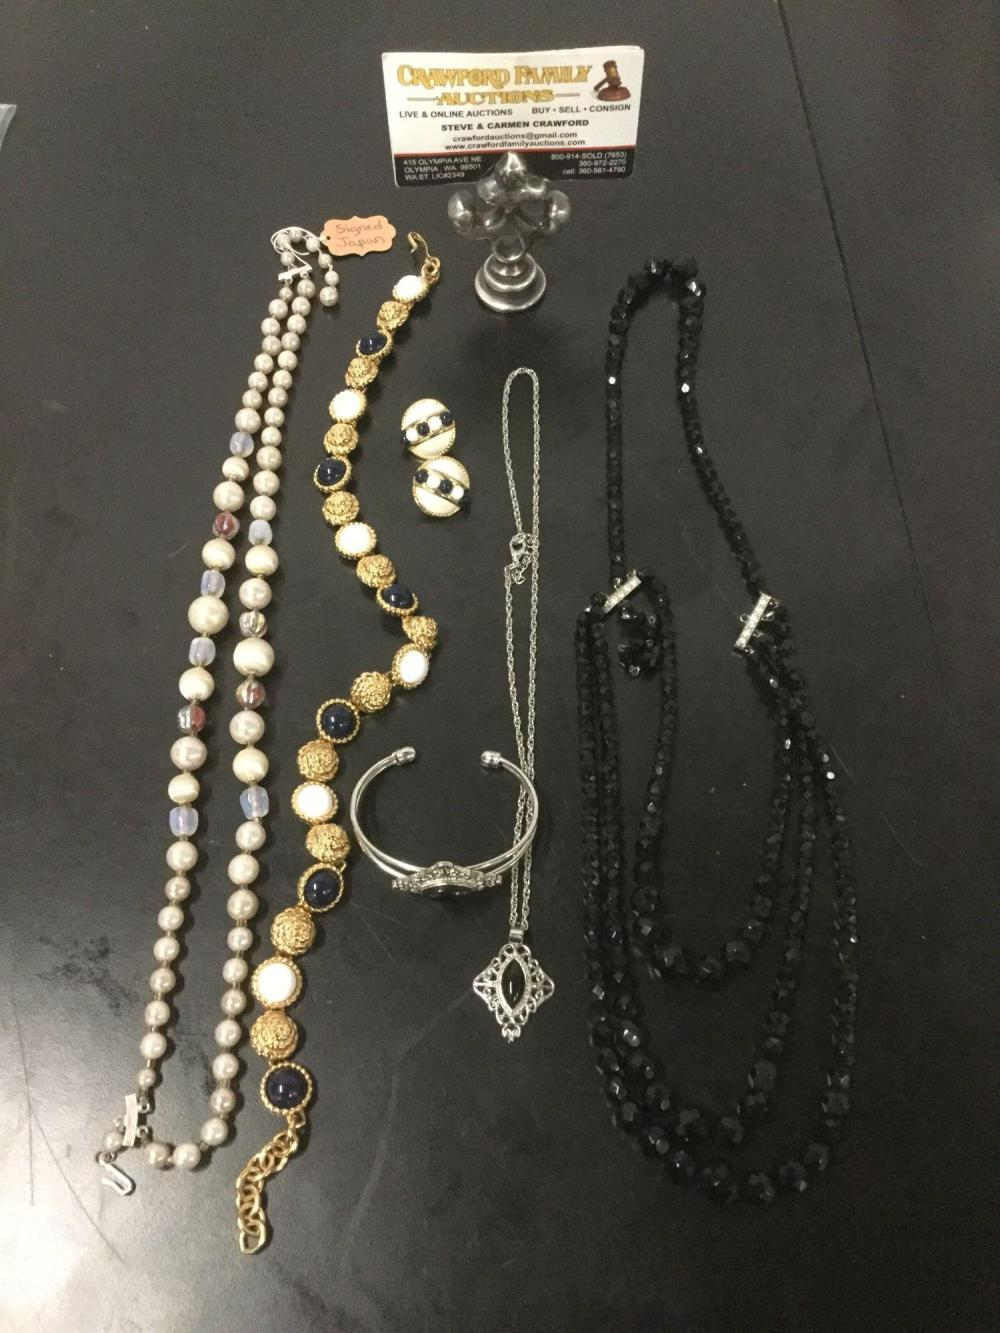 4 vintage & modern costume jewelry necklaces, a pair of earrings and a bracelet - see pics